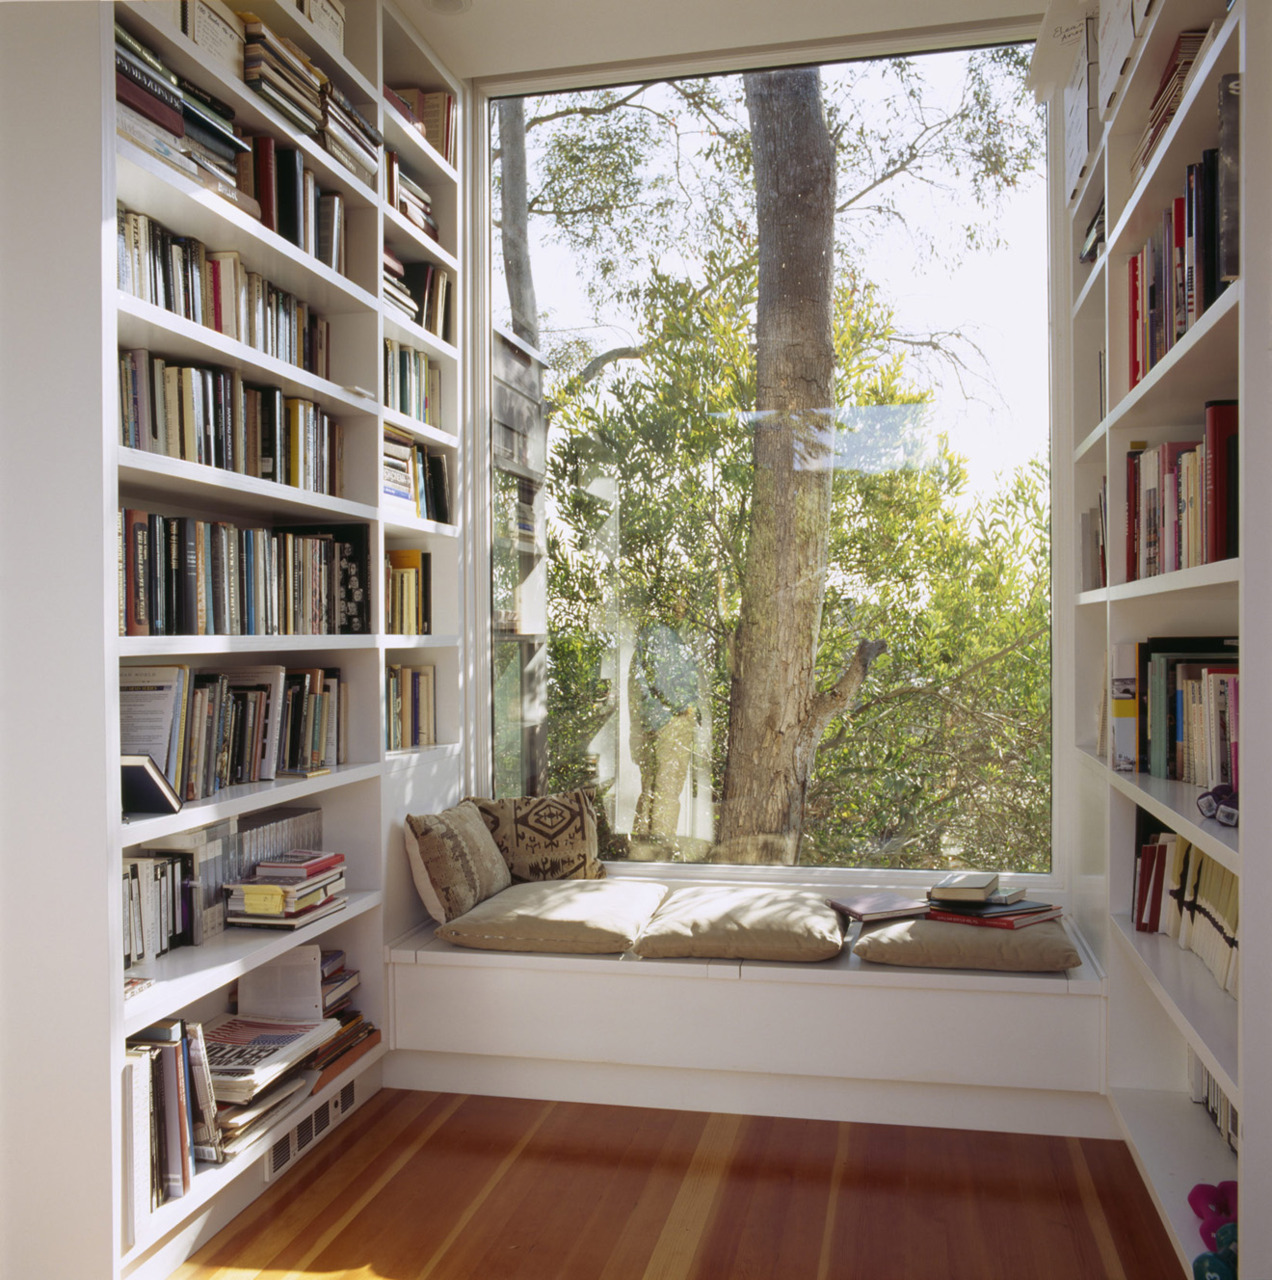 Book Shelfs Ahhhh Bookshelves | Bedside Table Books